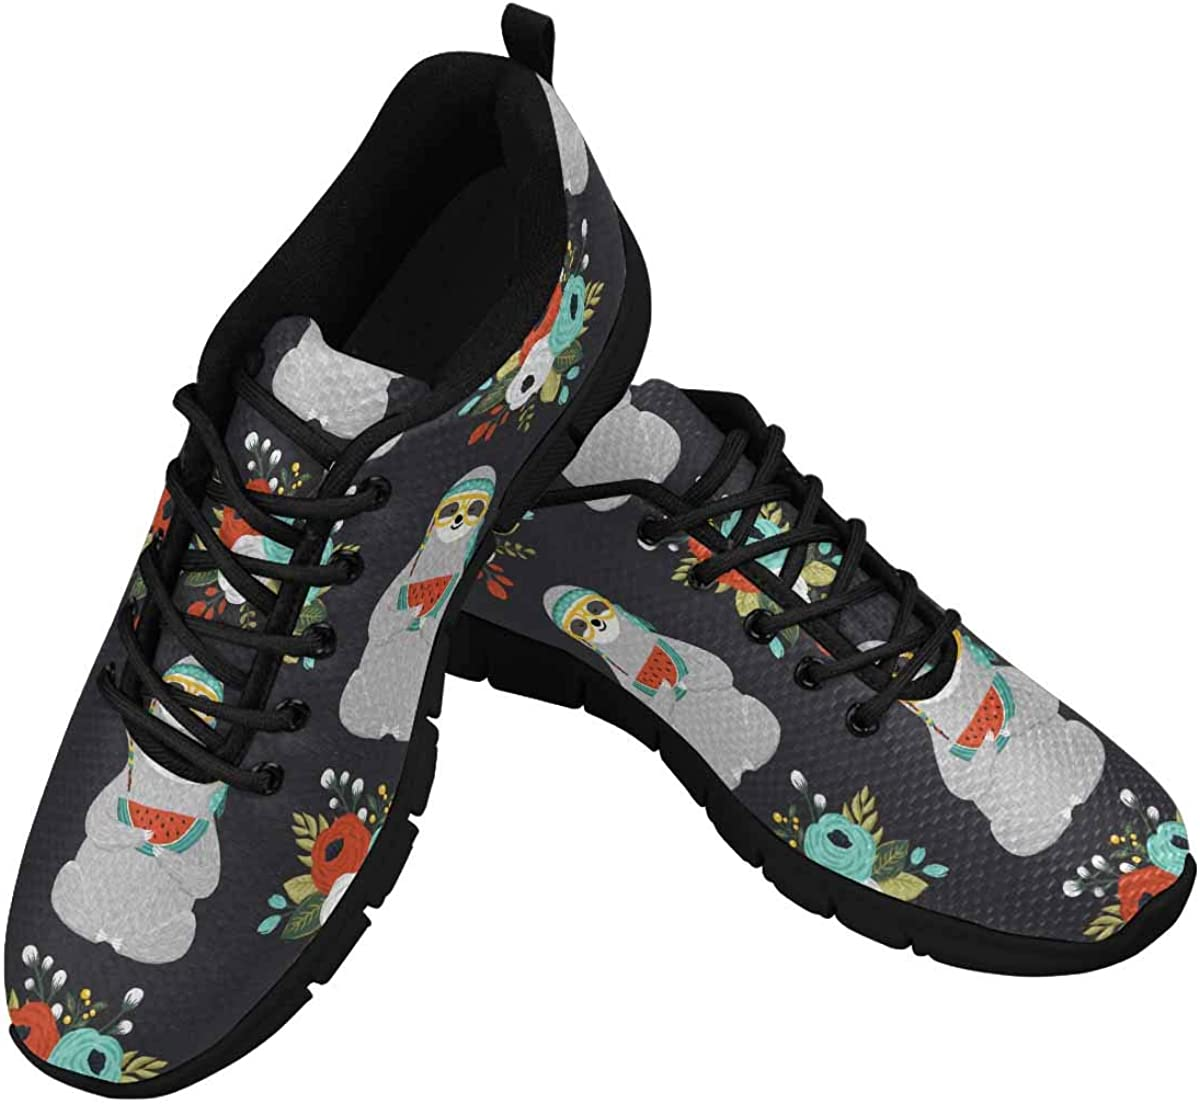 INTERESTPRINT Cute Baby Sloth and Flowers Women's Athletic Walking Shoes Breathe Comfort Mesh